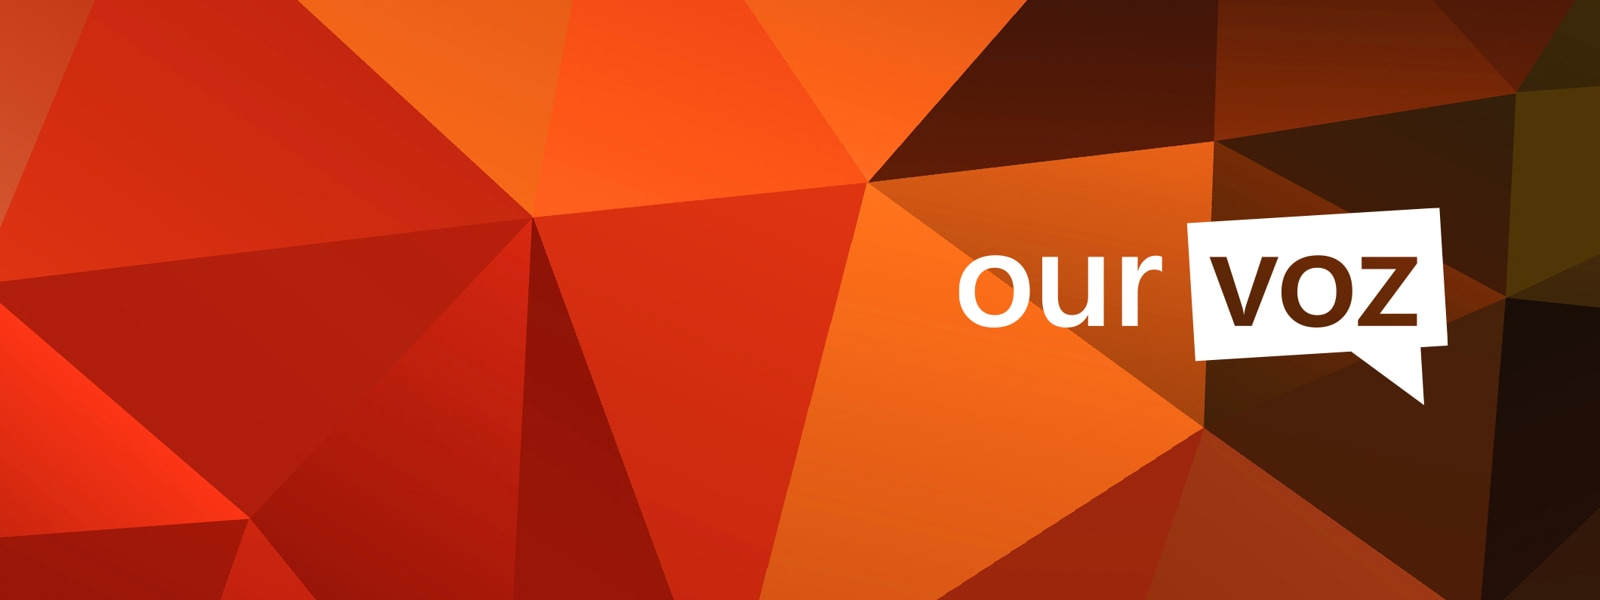 Orange background banner with the logo Our Voz.